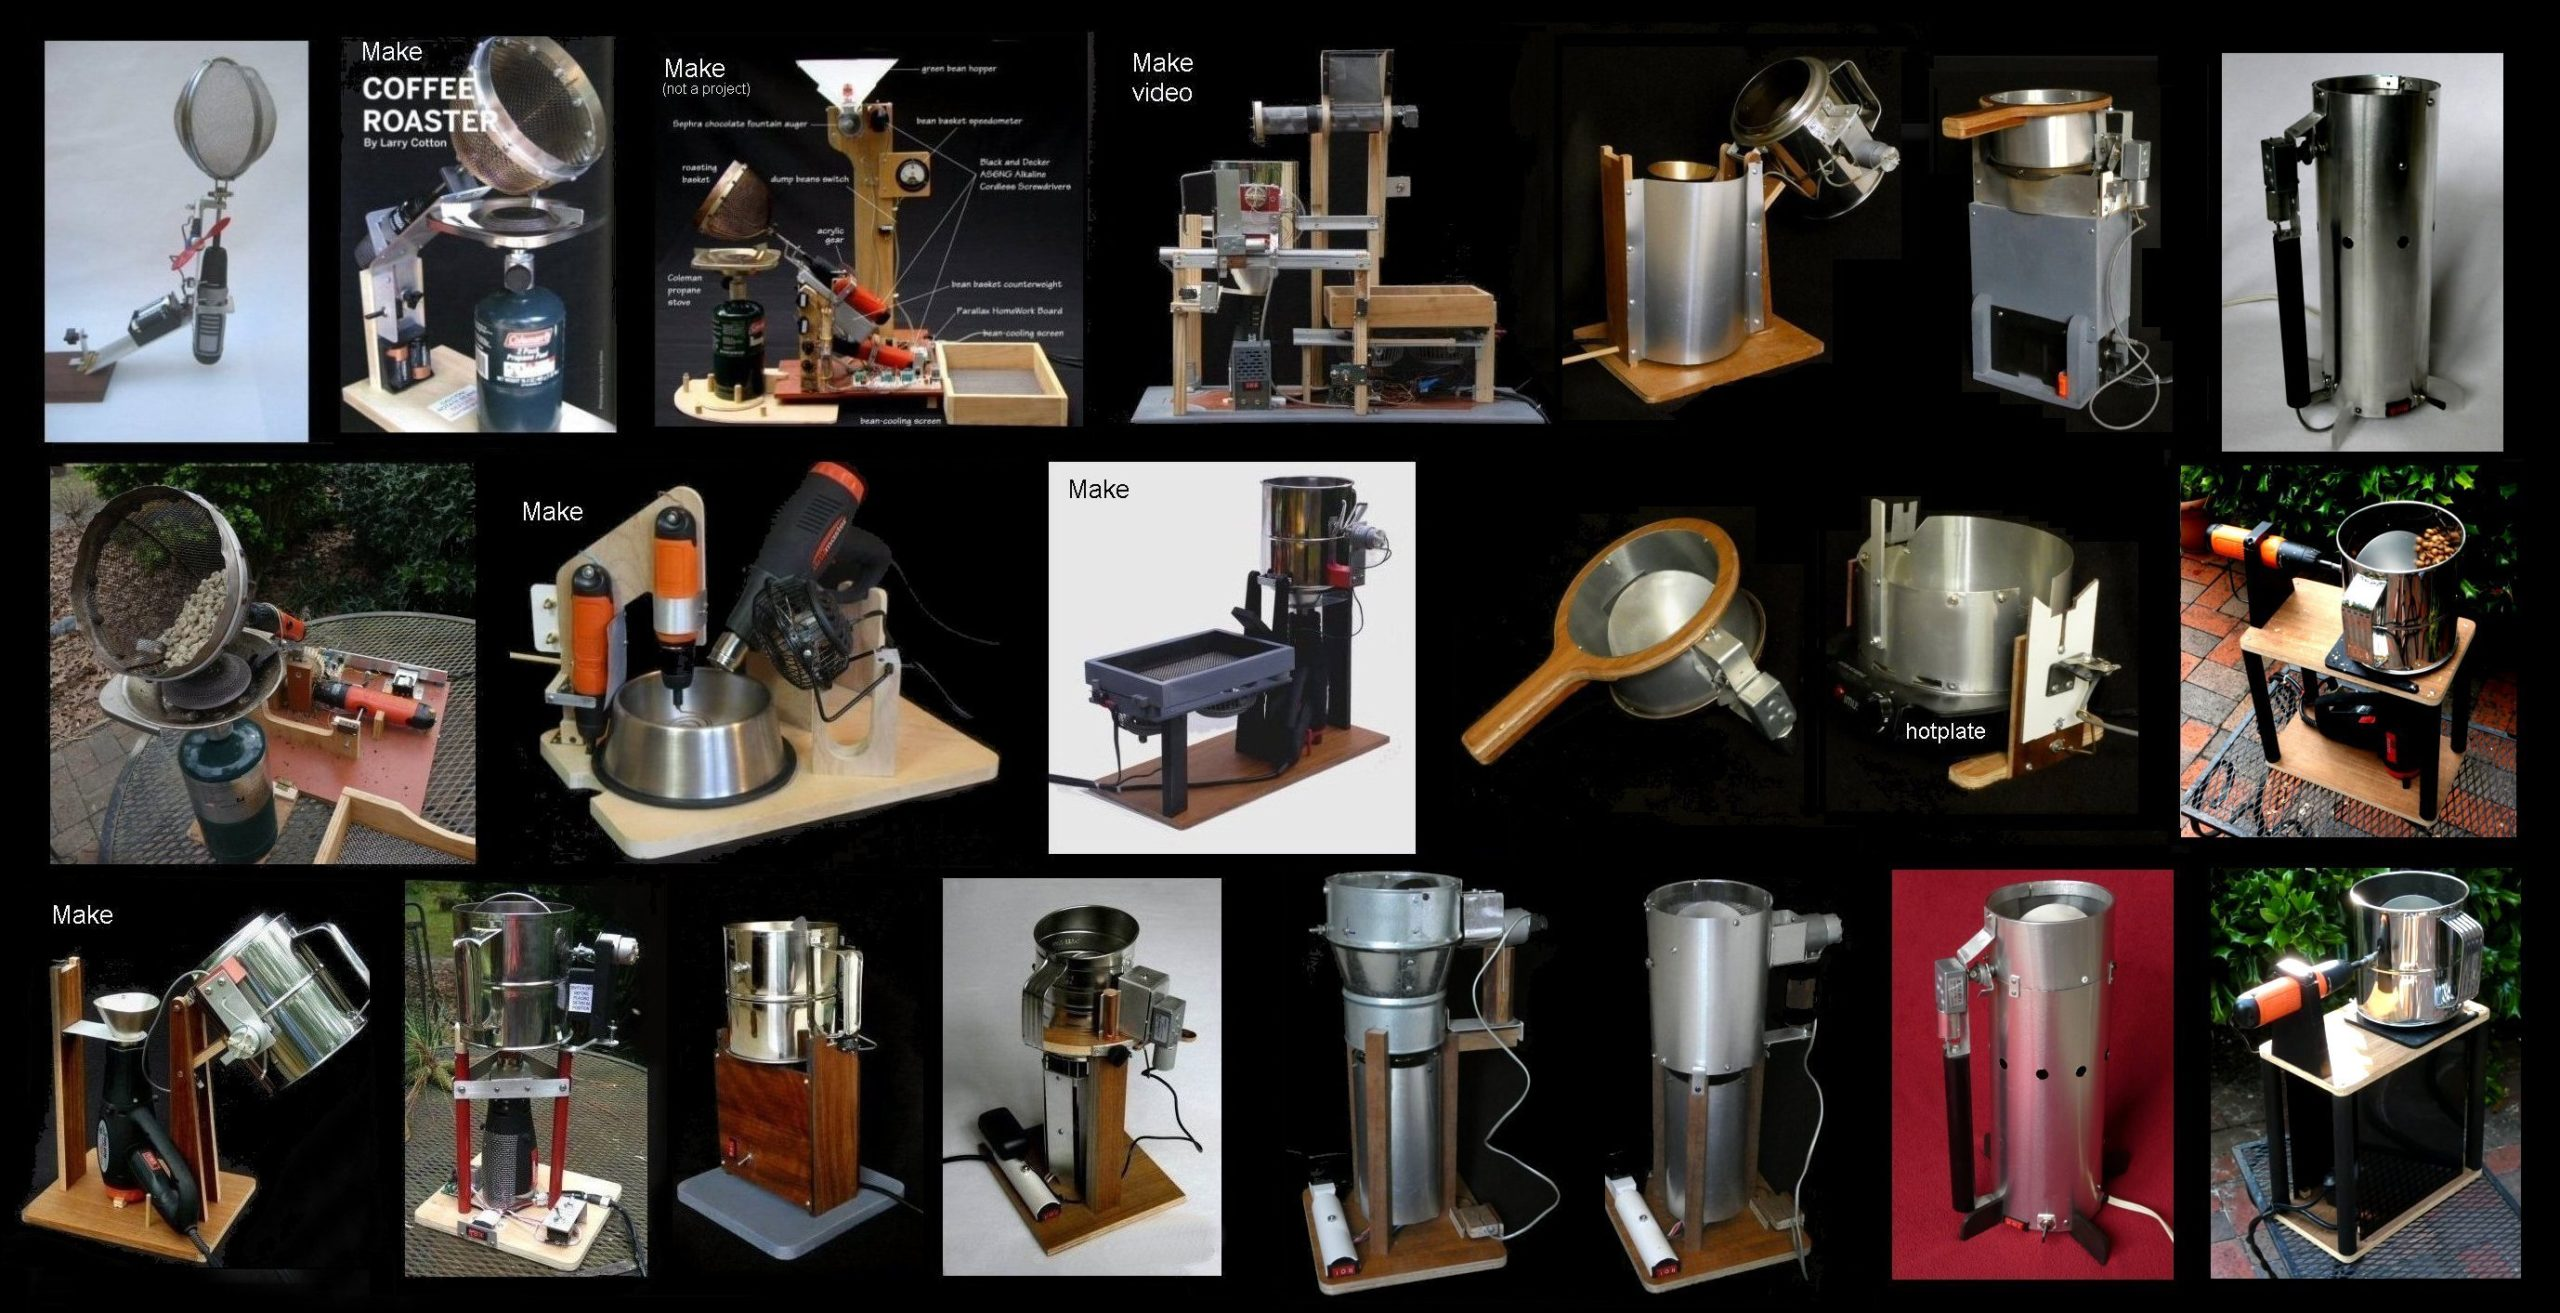 My 15-Year Quest to Make the Ultimate DIY Coffee Roaster